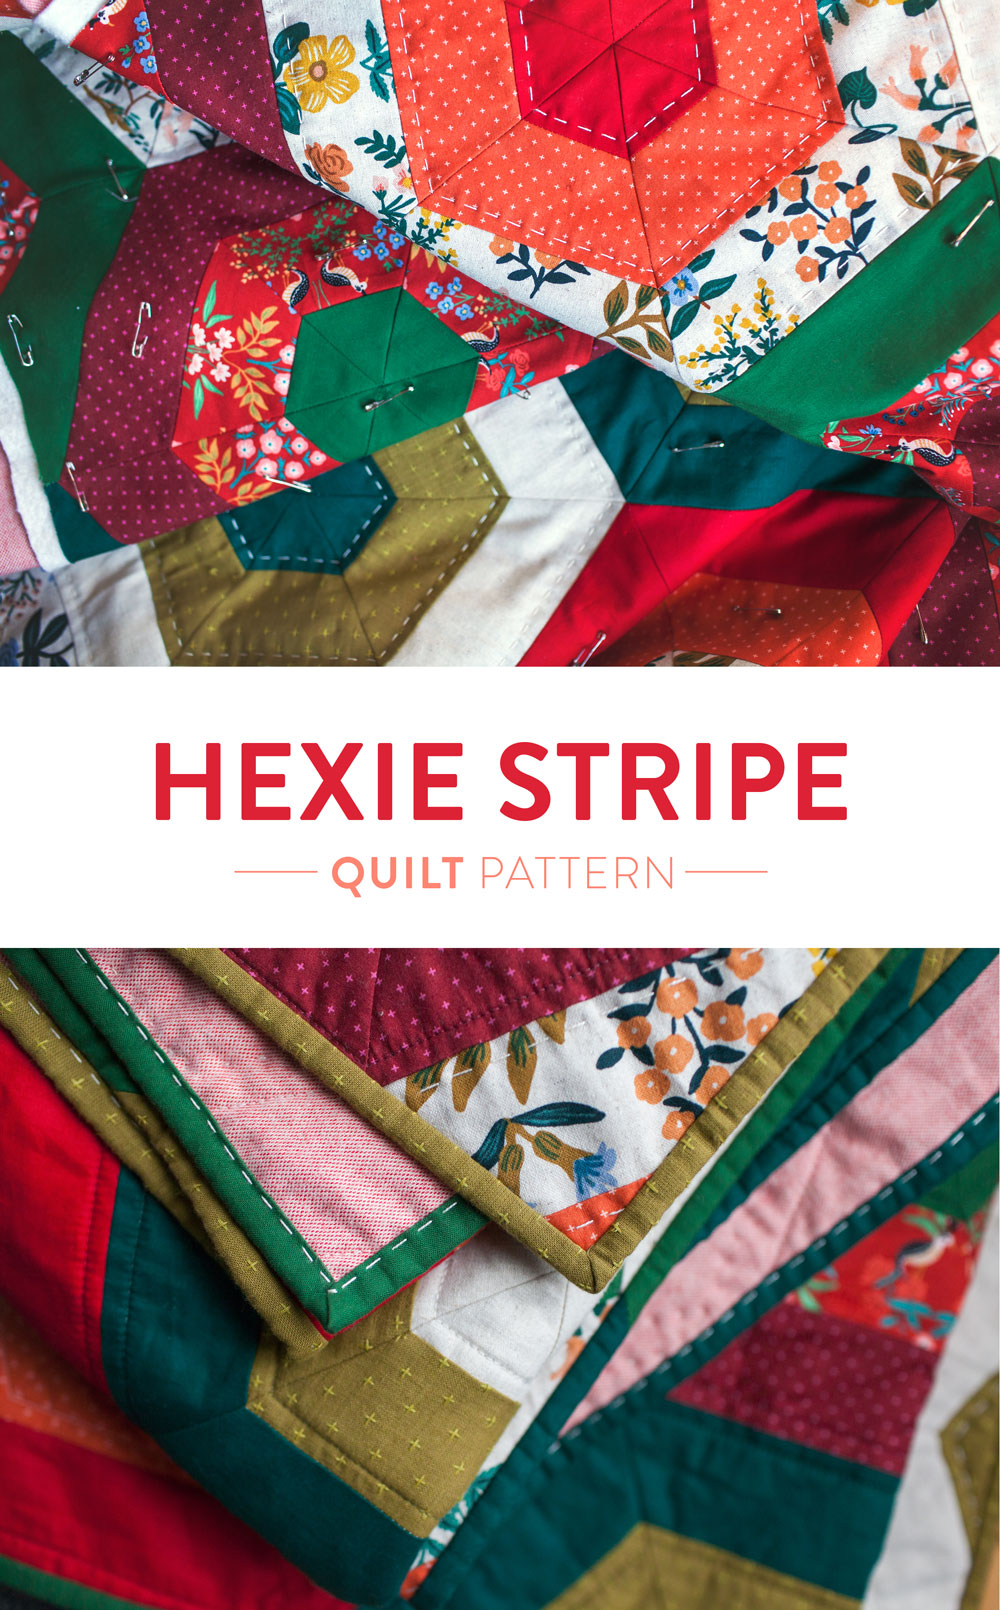 It's easy to get in the holiday spirit and get your Christmas quilting done with a pattern like Hexie Stripe. It's a vintage design with a modern twist! To make a throw all you need are 9 different 1/2 yd. cuts of fabric. Mix red and green solids with some floral prints for a beautifully festive quilt! suzyquilts.com #christmasquilt #diychristmas